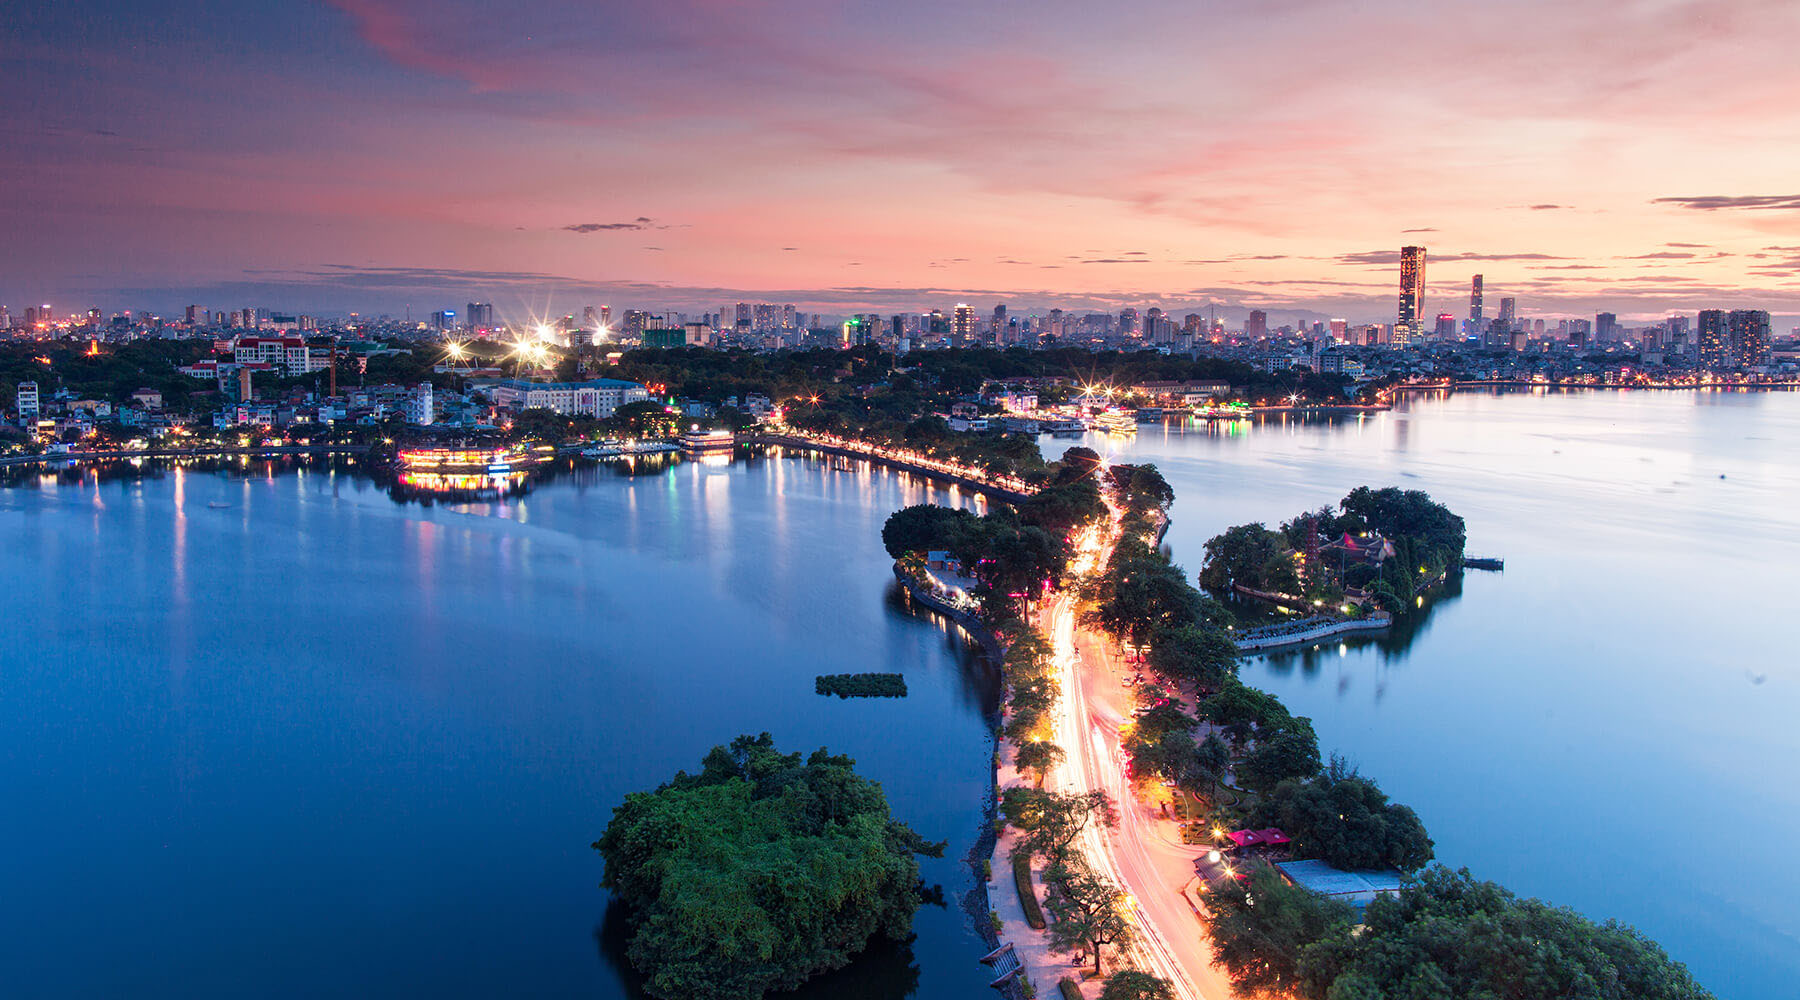 14 NIGHT THAILAND & VIETNAM VOYAGE